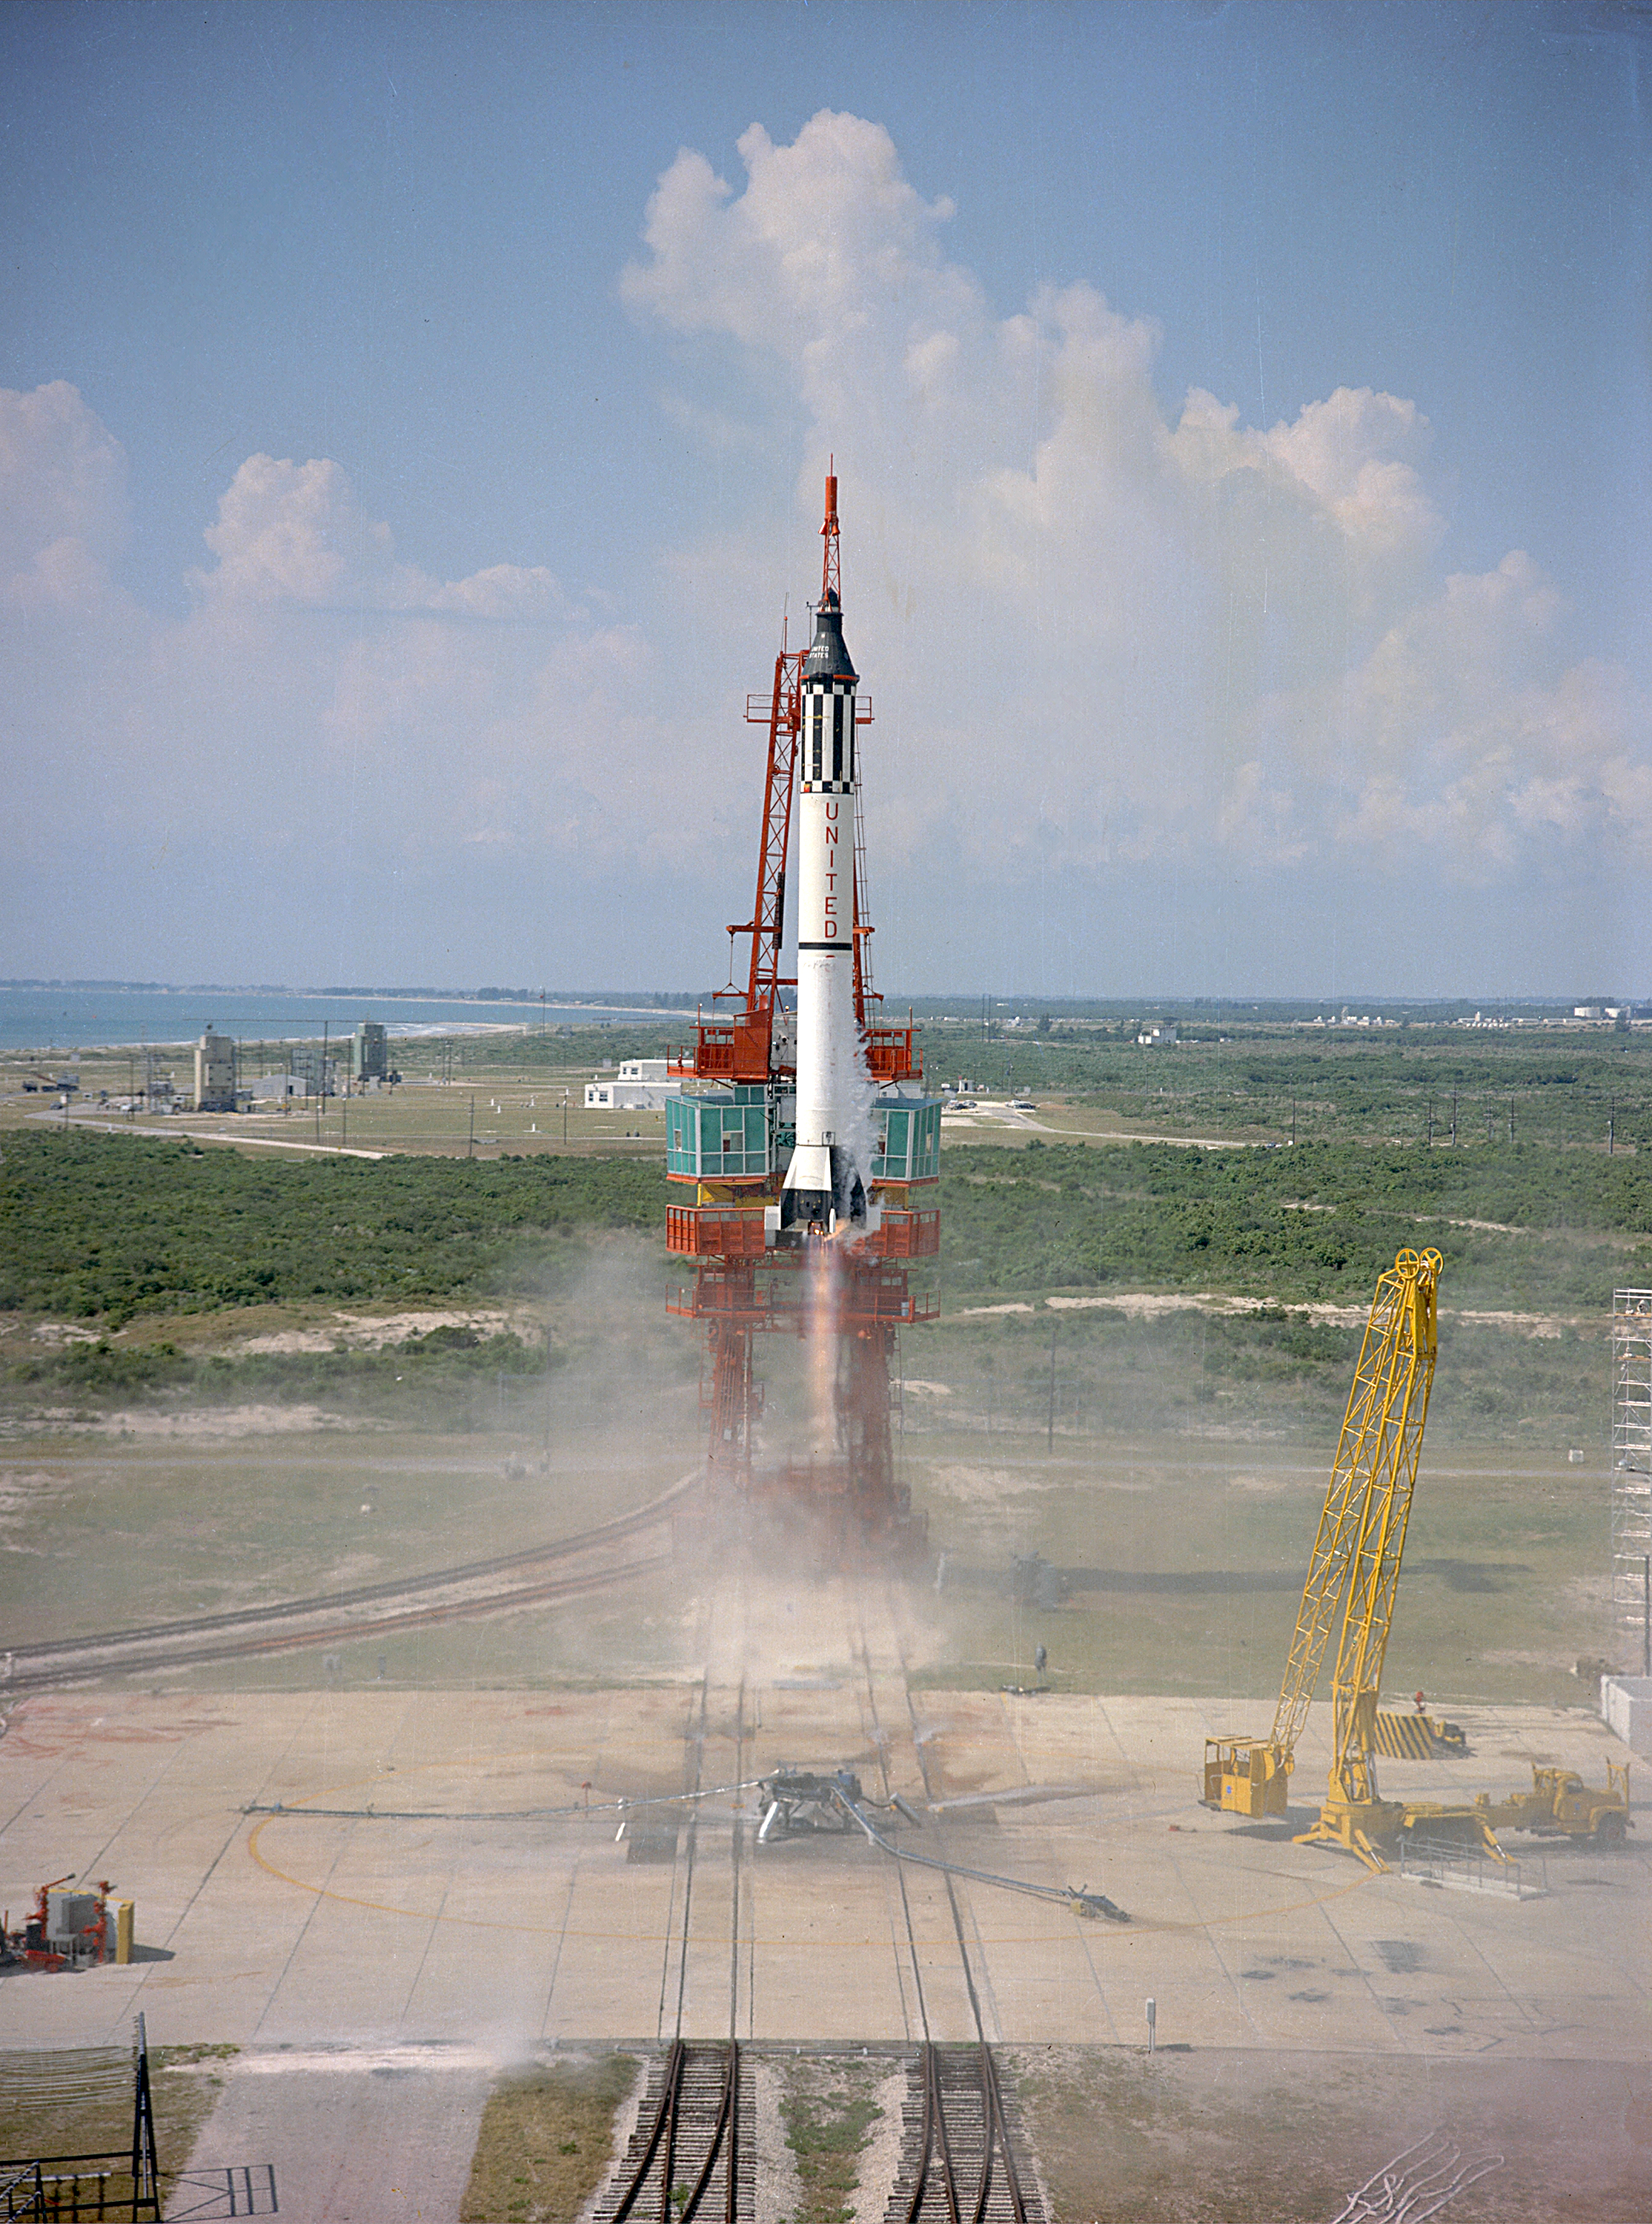 Alan Shepard's Freedom 7 capsule was launched on a Redstone rocket.